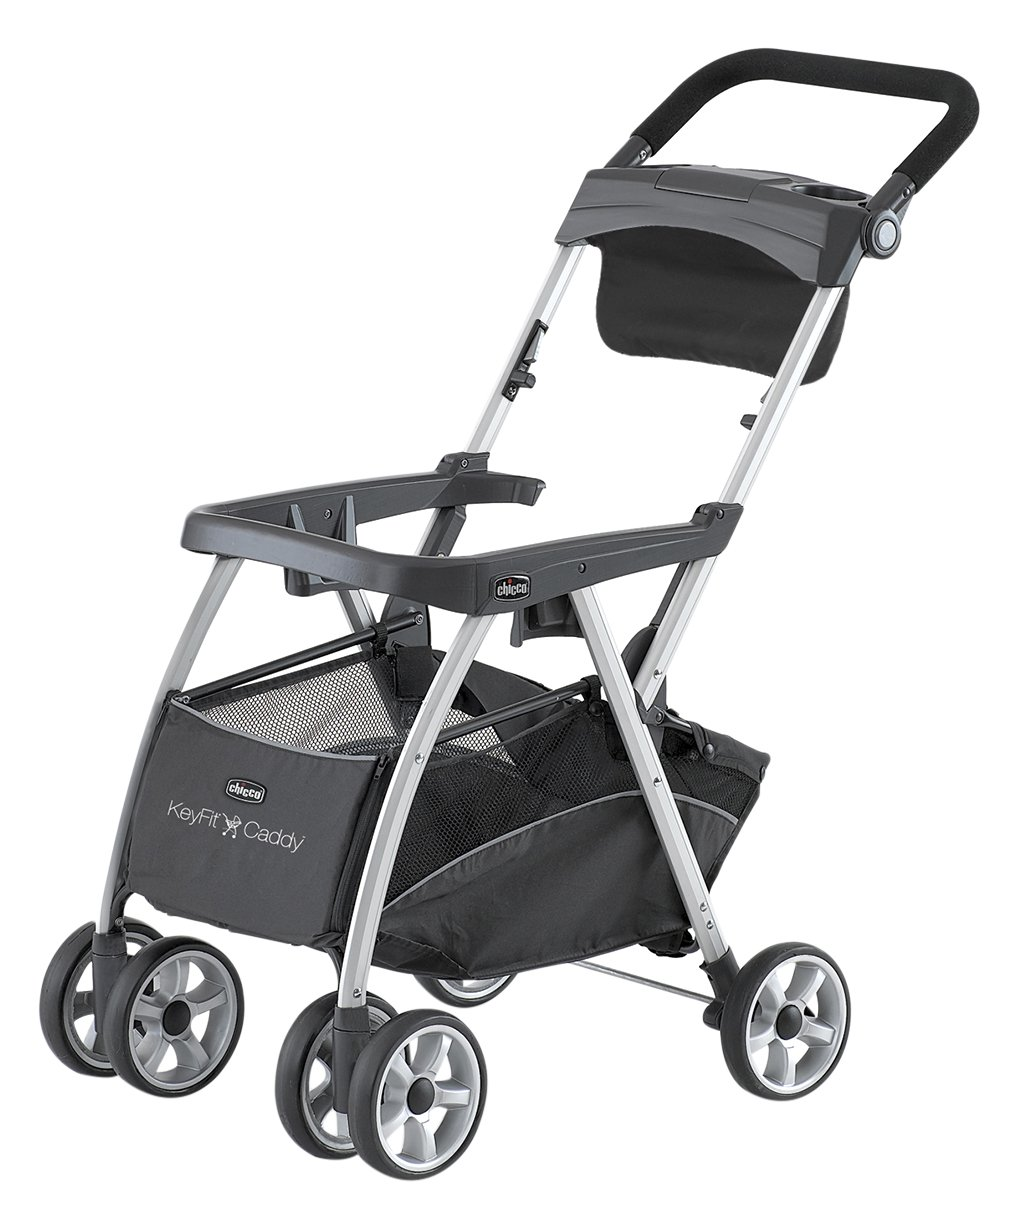 Chicco KeyFit and Fit2 Car Seat Compatible Caddy Baby Stroller Frame, Black by Chicco